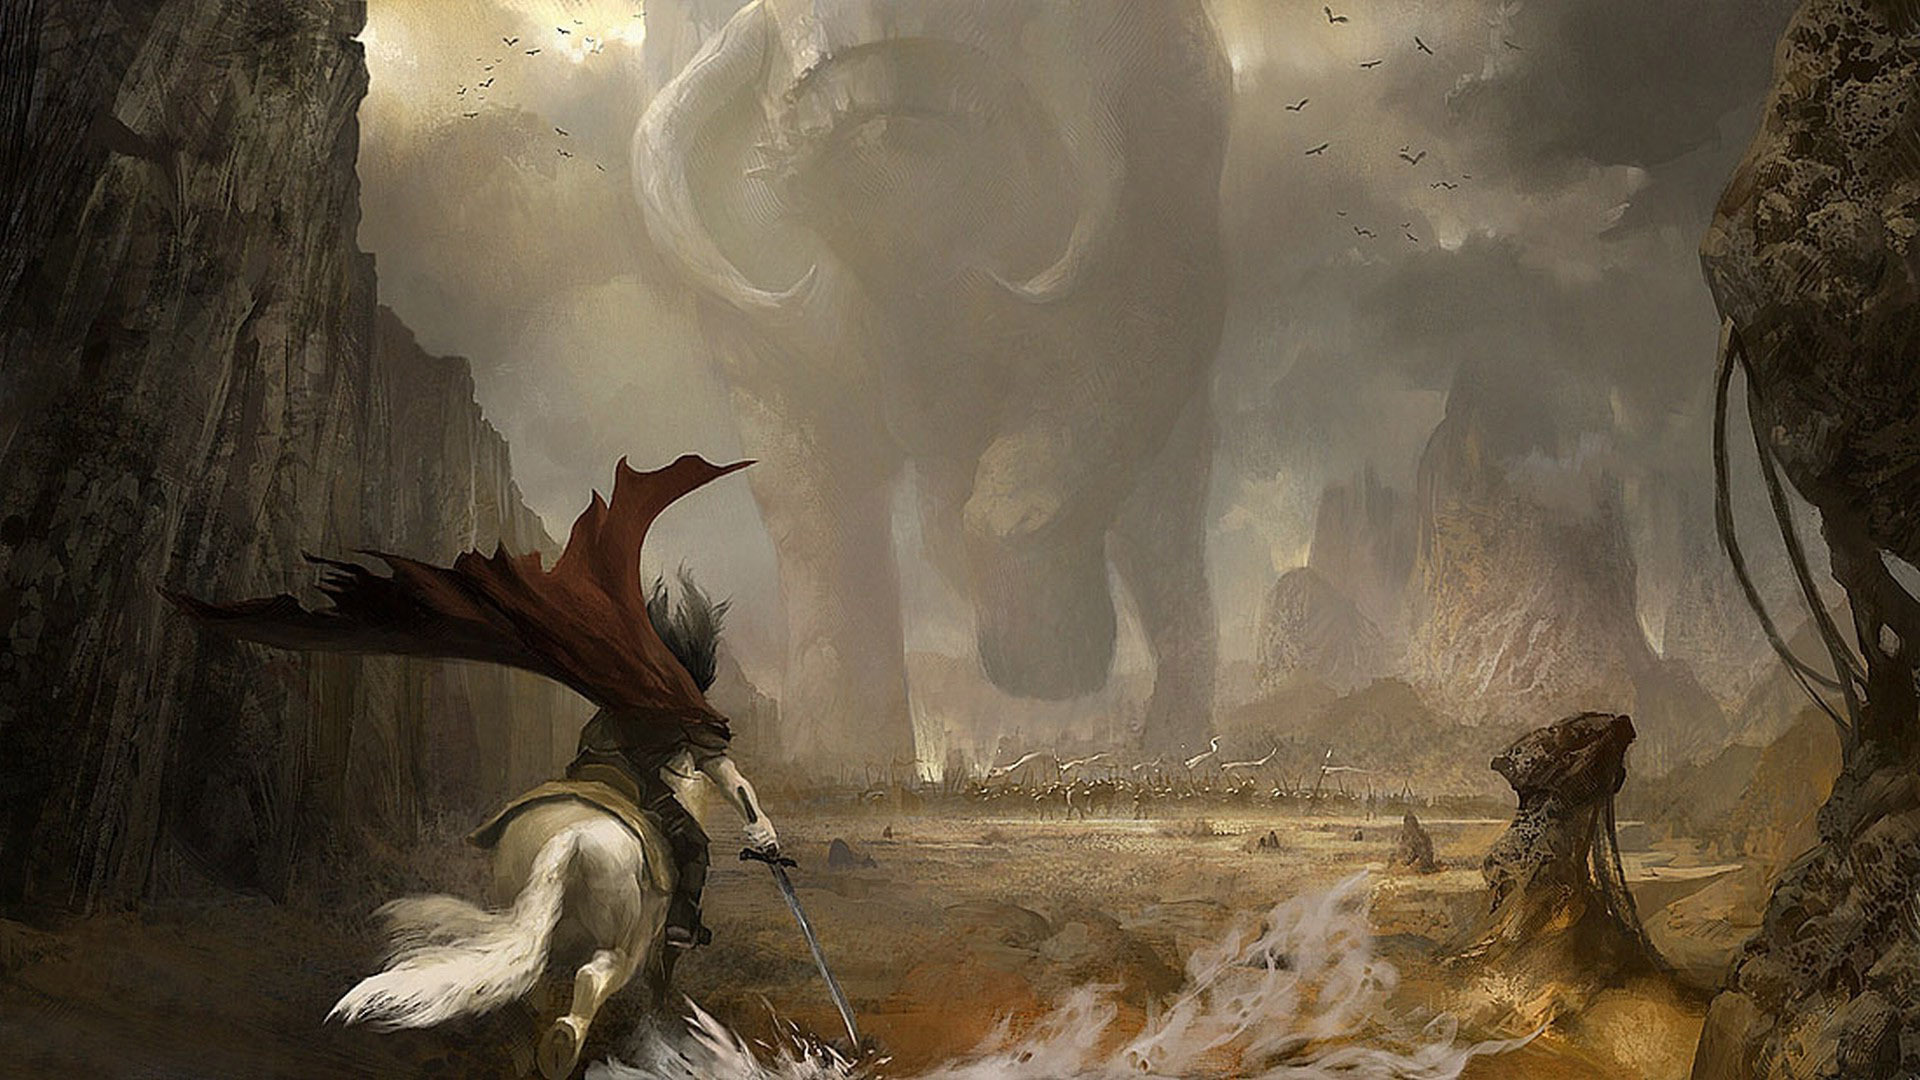 Cibles et missives (quêtes) des Dragonniers 1410038503-battle-against-the-giant-buffalo-type-monster-fantasy-hd-wallpaper-1920x1080-2072